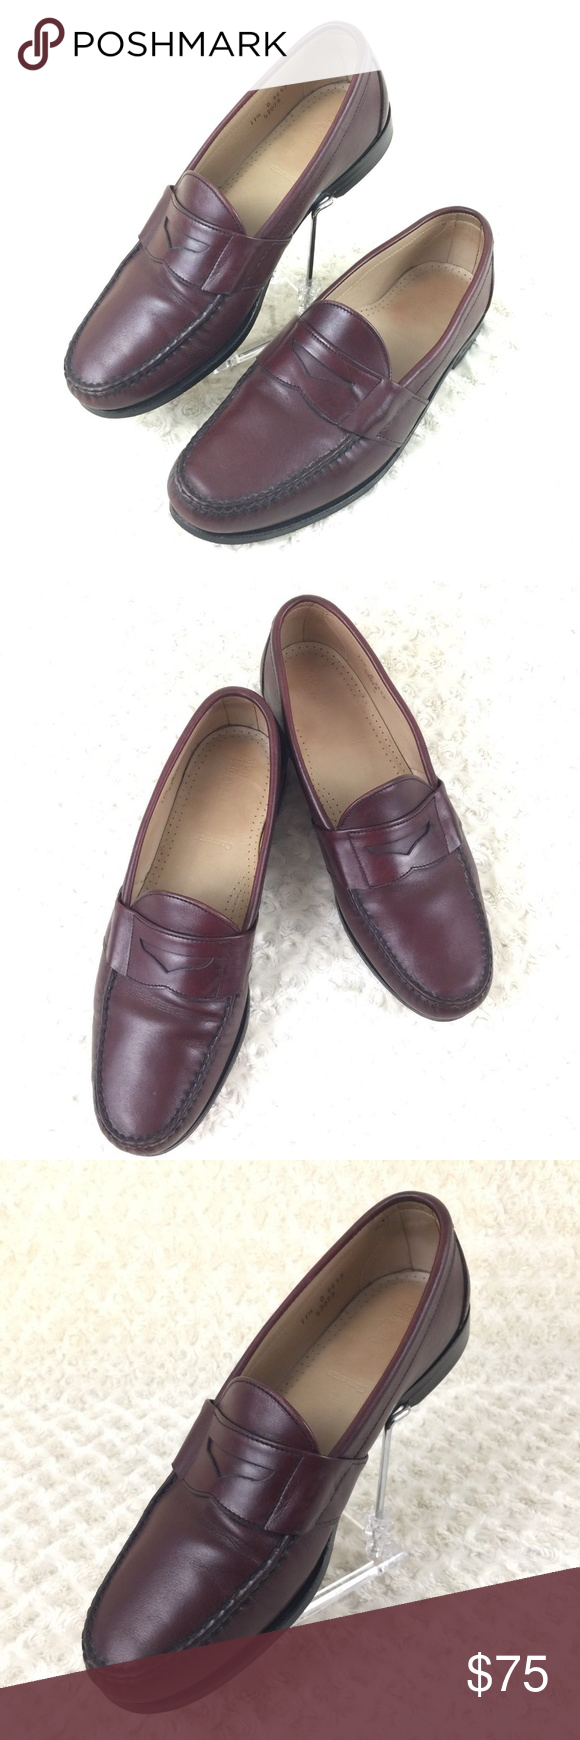 331f5567b59 Allen Edmonds Cameron Penny Loafers Shoes Allen Edmonds Men s Genuine Leather  Penny Loafers Shoes Style